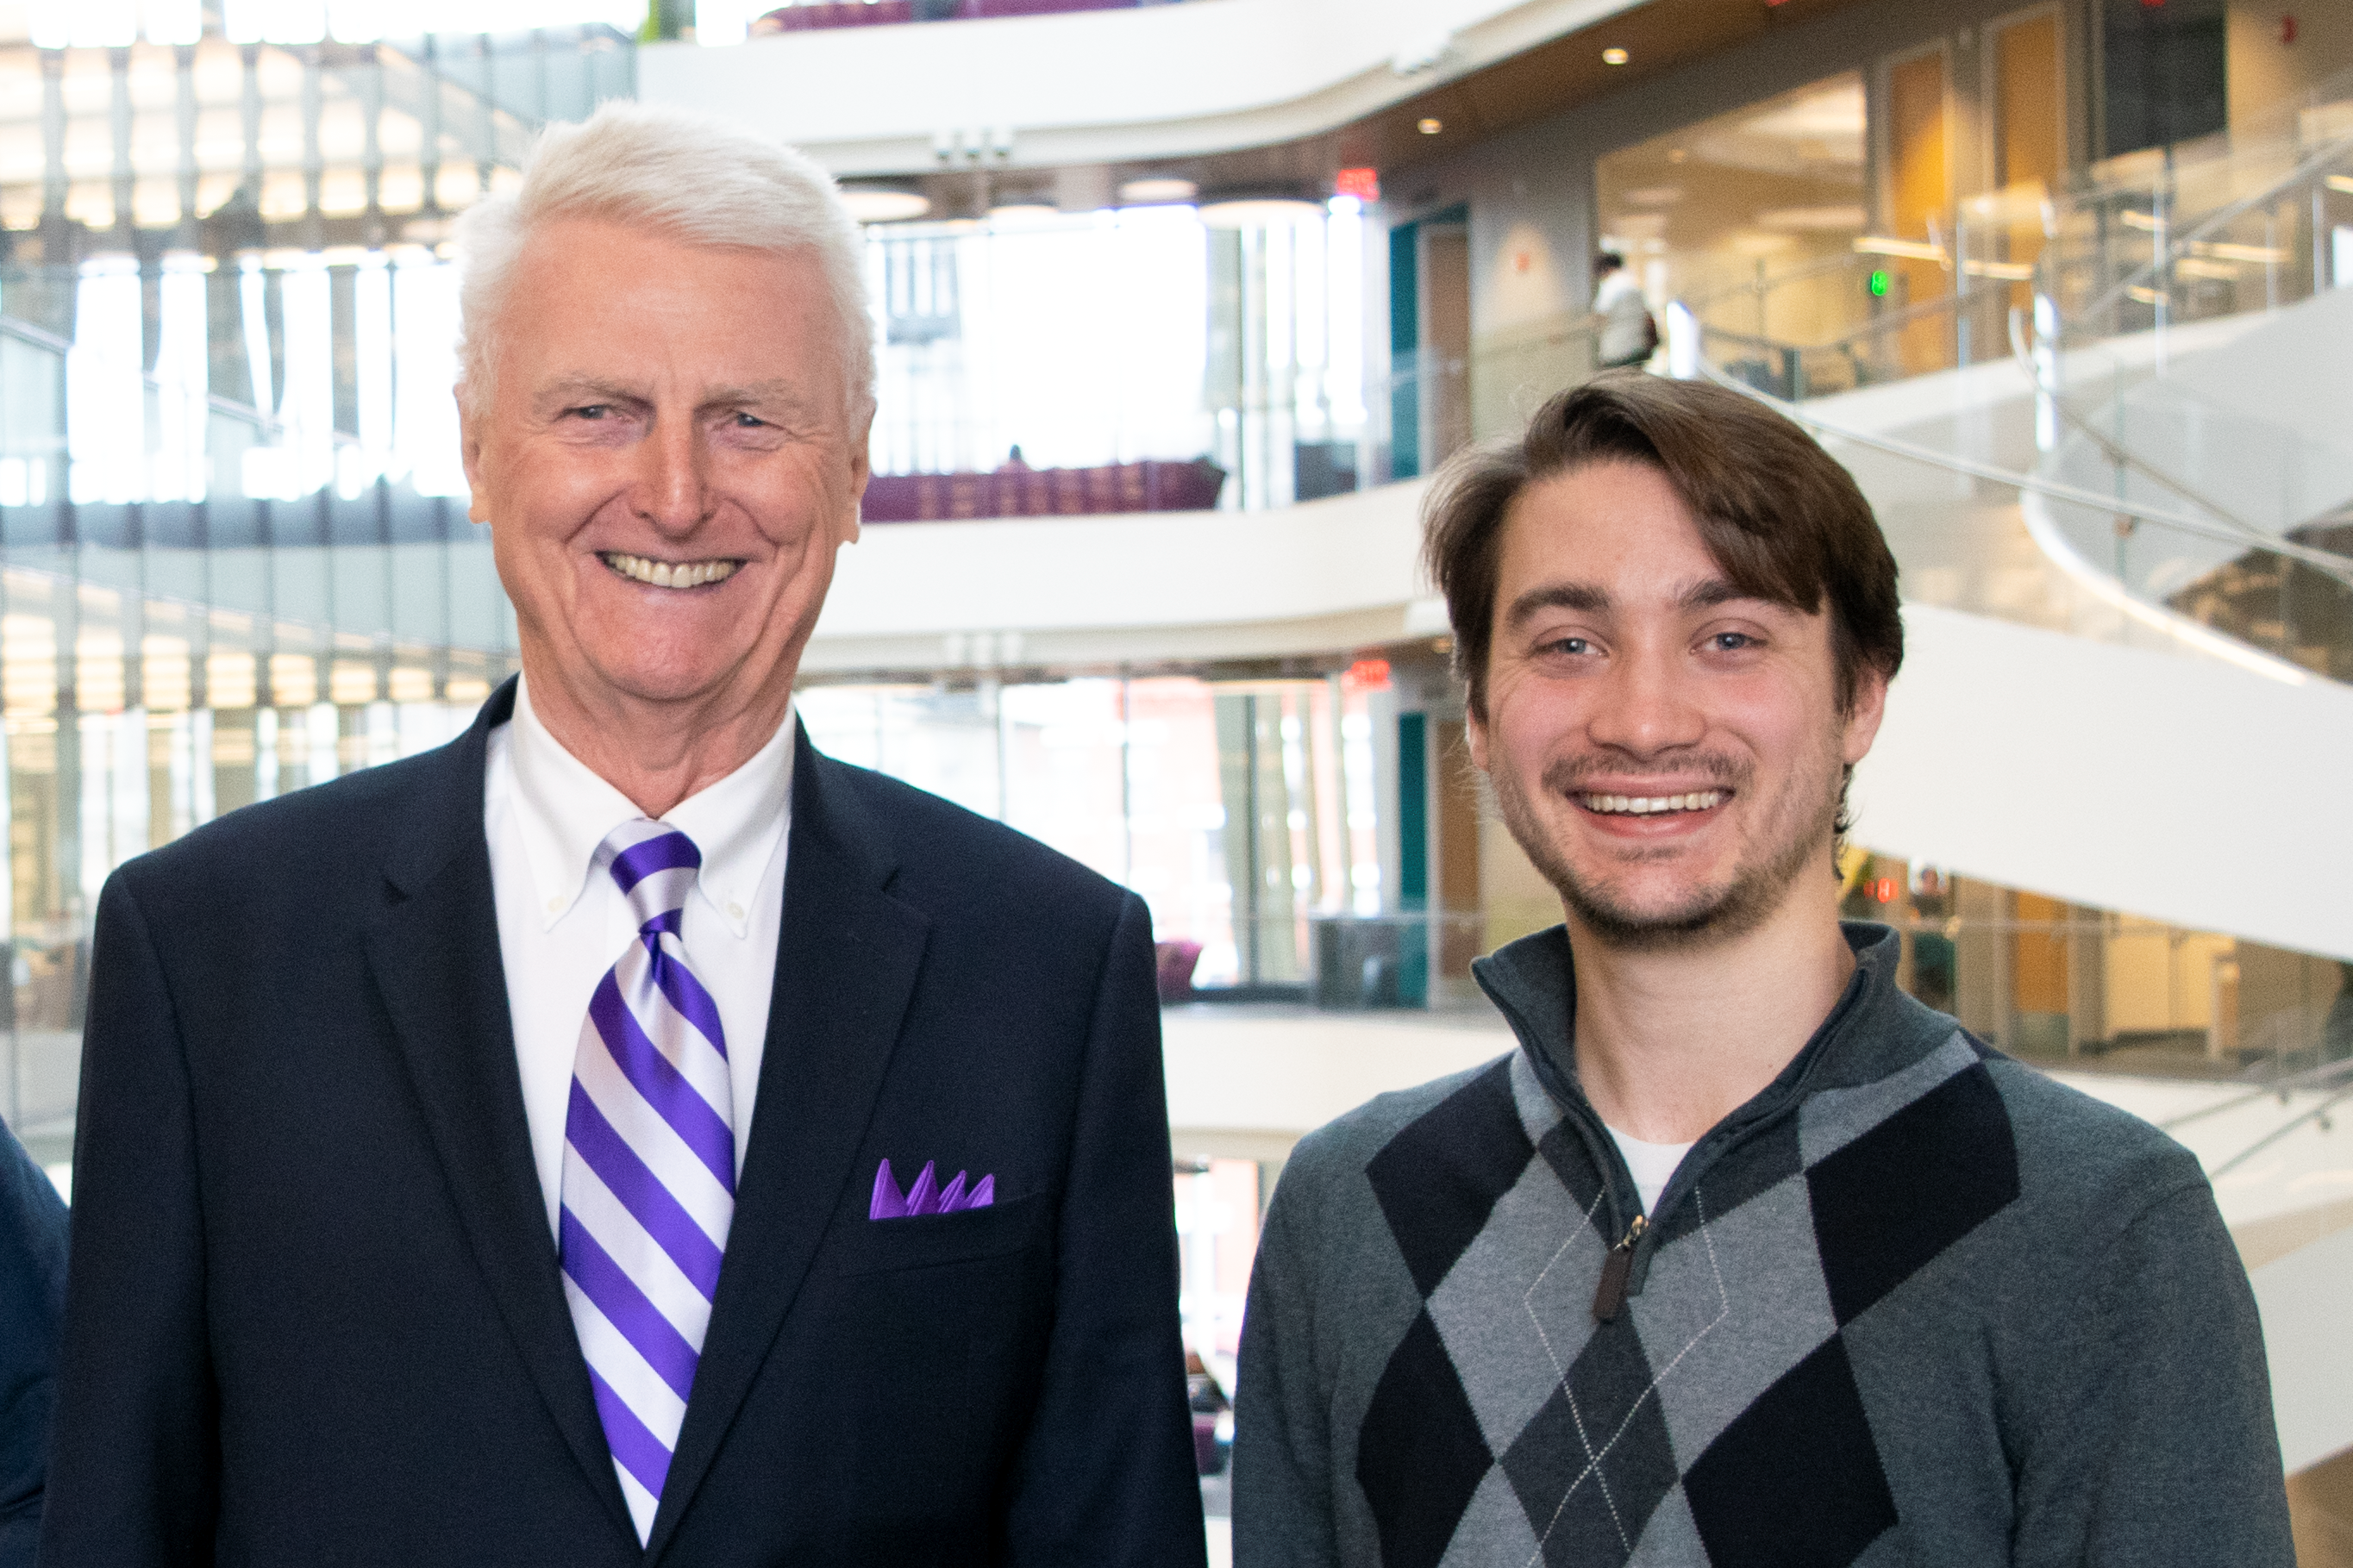 Benjamin Gincley with Dr. Cochrane